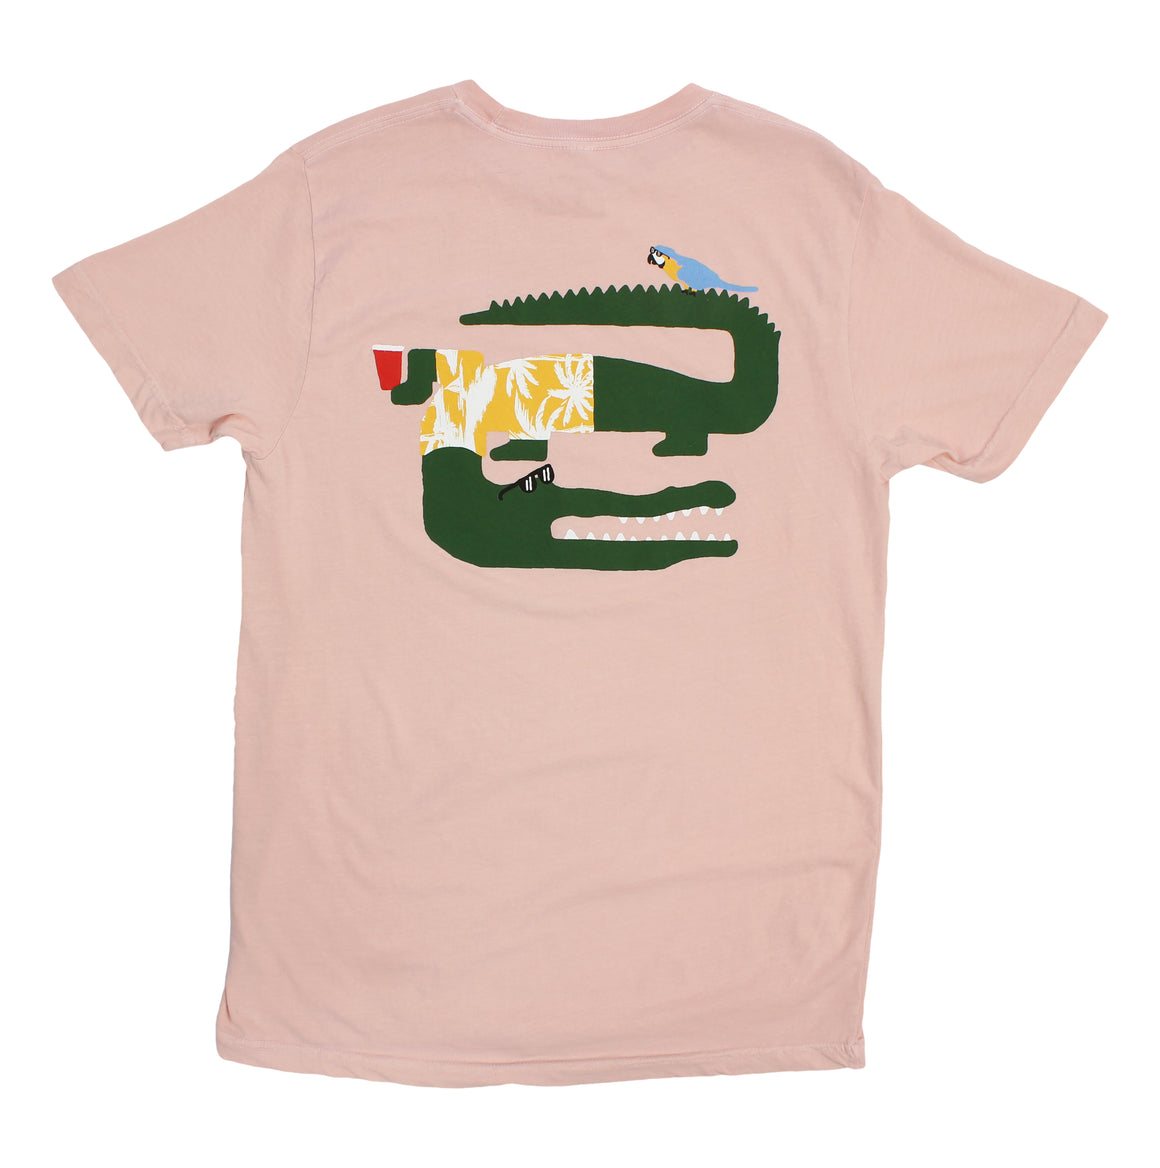 crocodile / alligator graphic tee by Altru Apparel